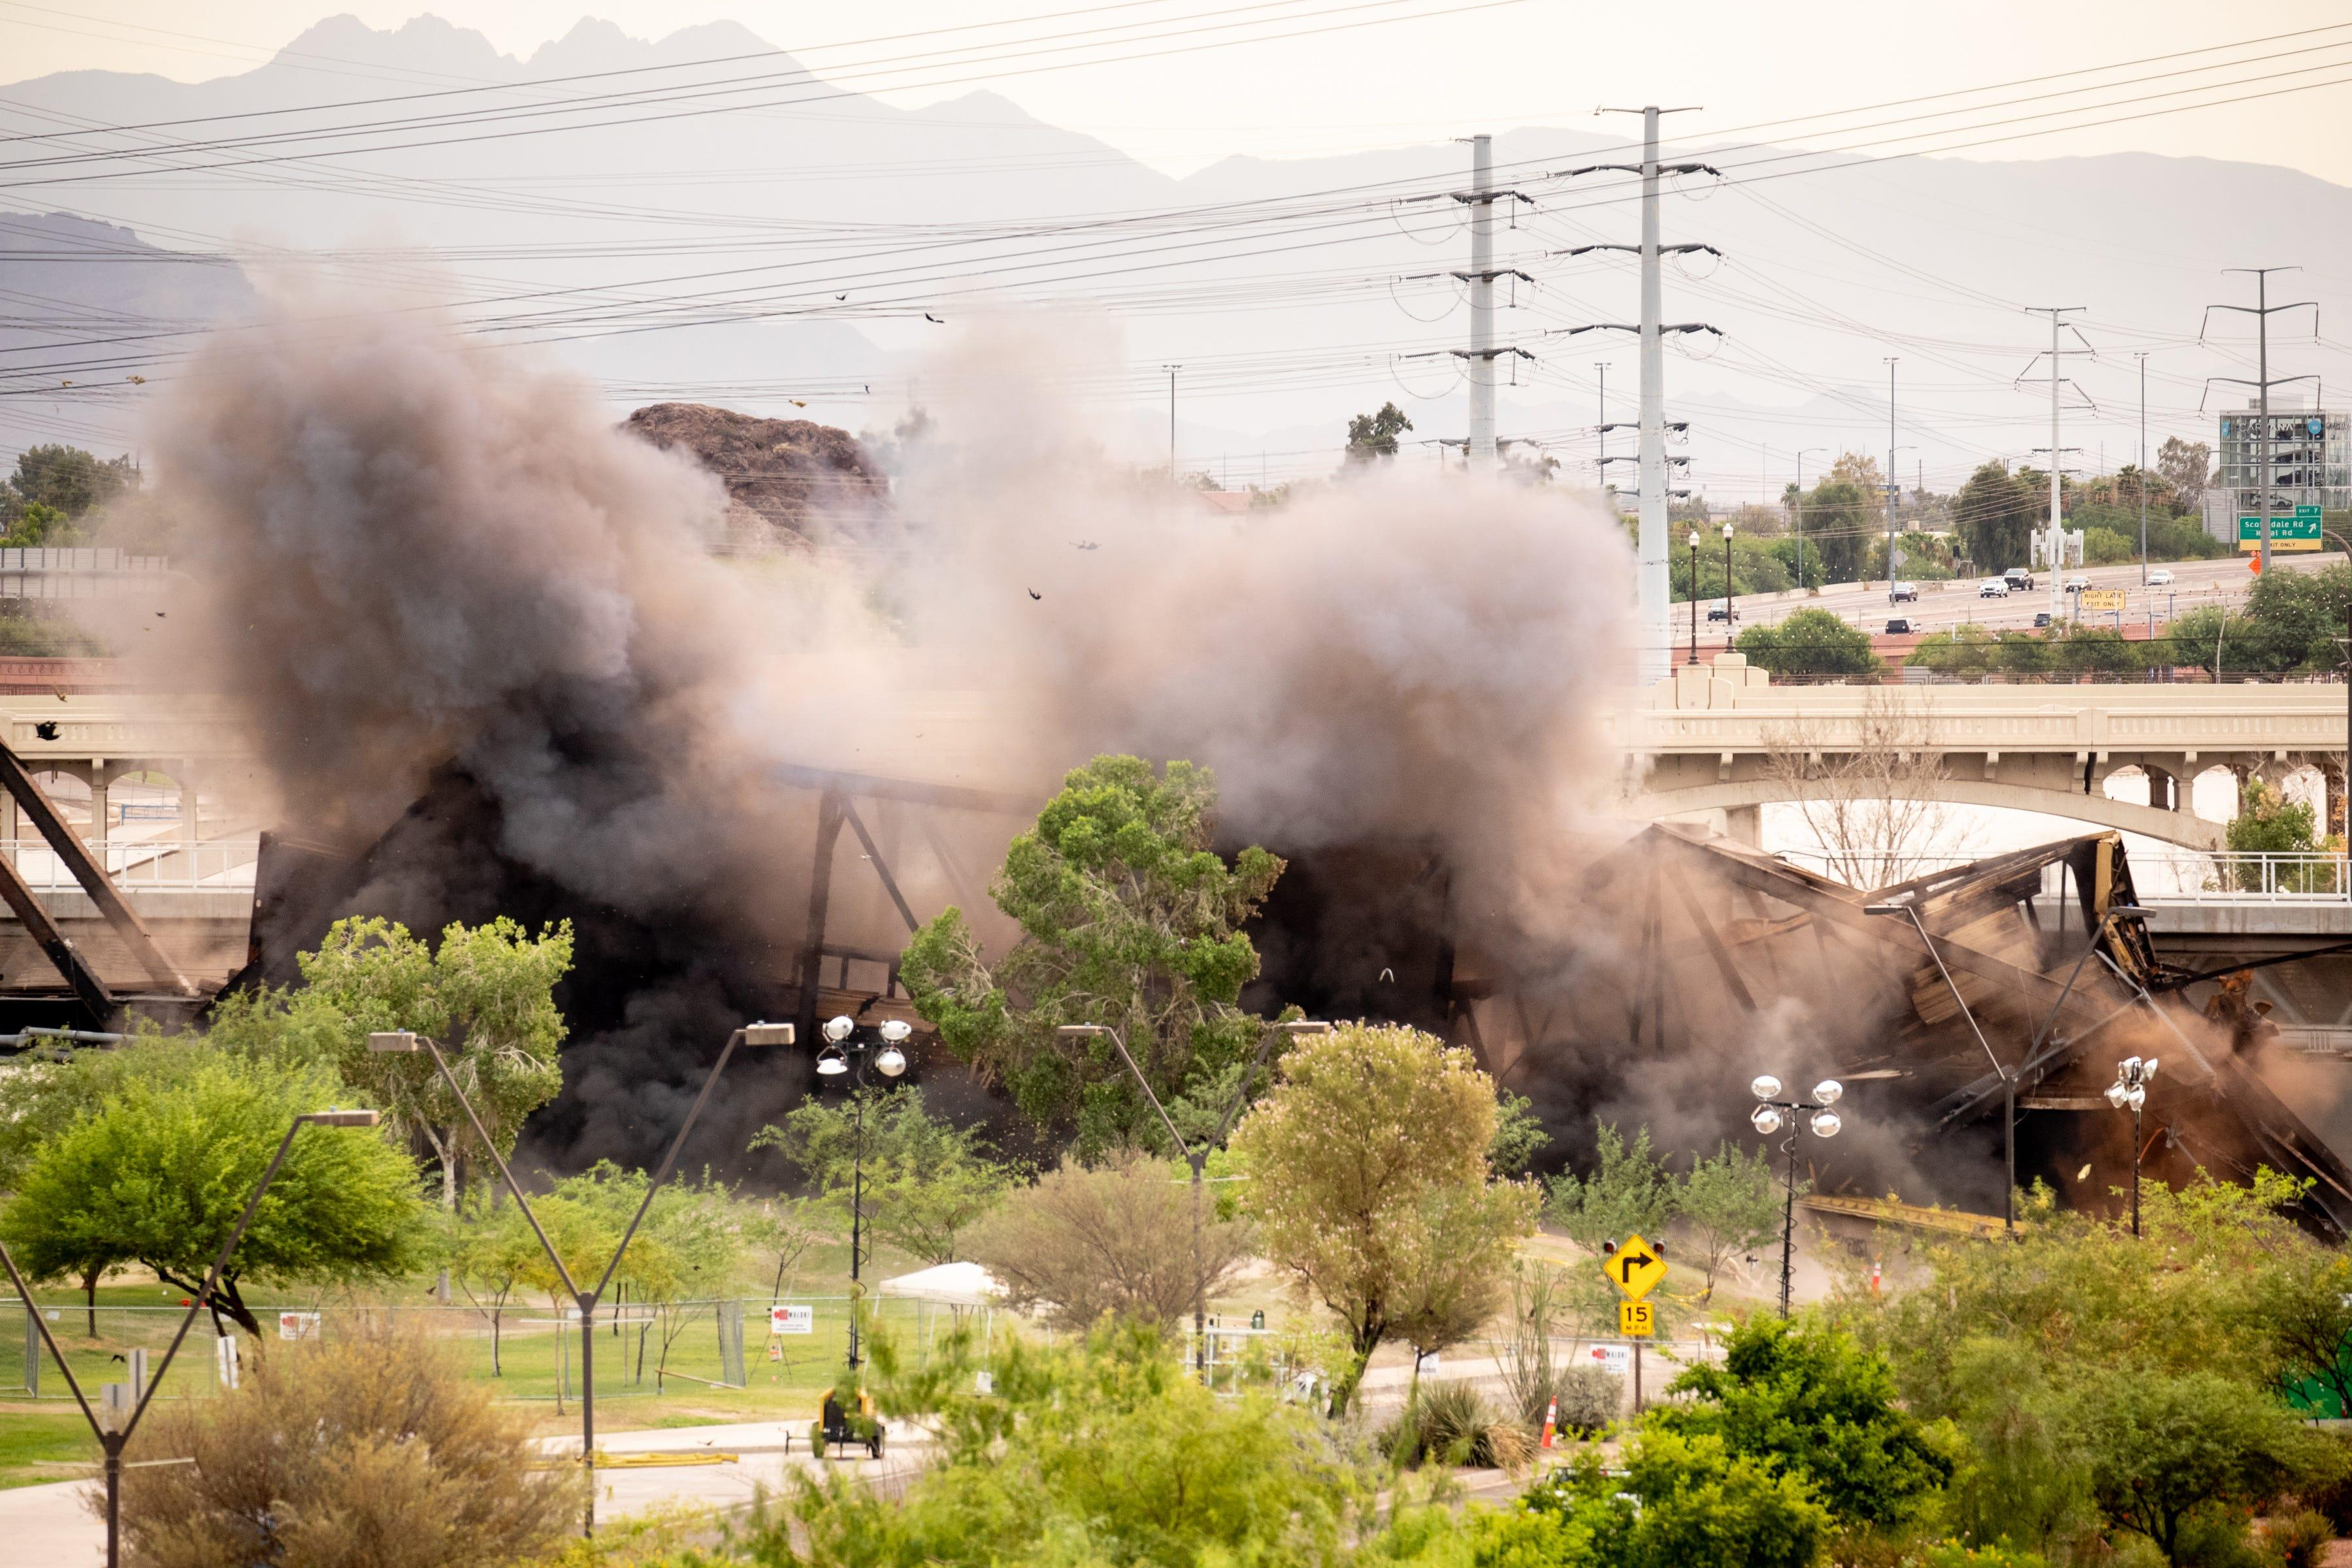 Arizona bridge partially detonated after train derailment; nearby residents asked to evacuate